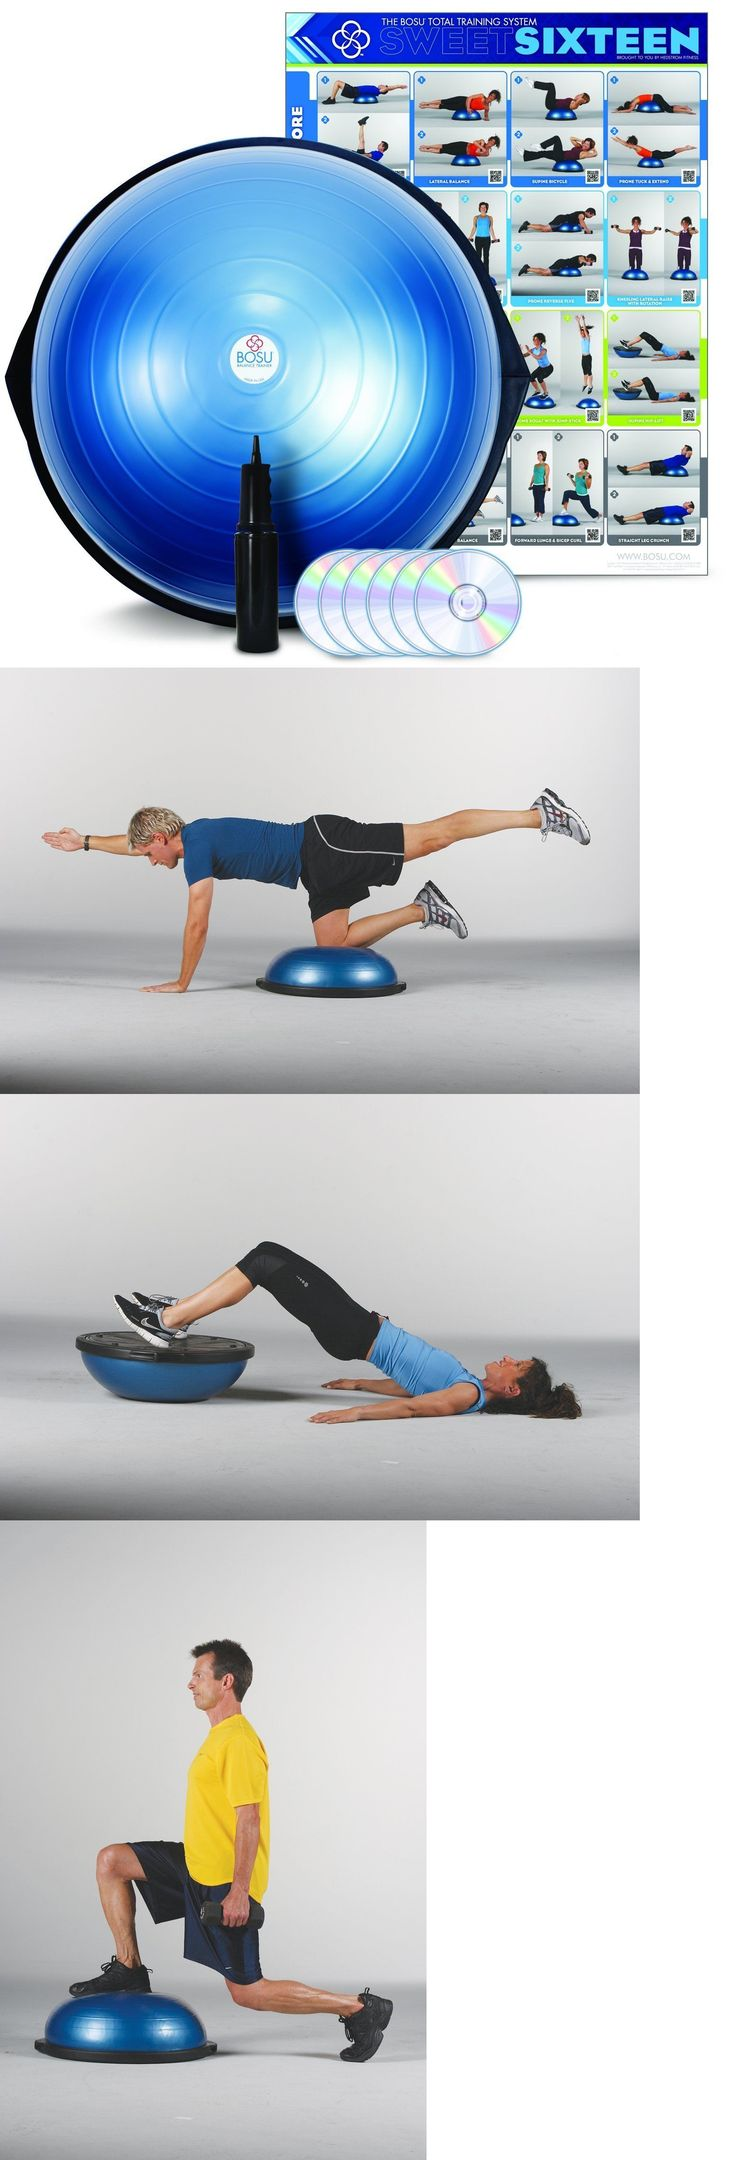 Balance Trainers 179803: Bosu Ball Pro Balance Trainer Exercise Ball Commercial Professional Gym Unit Fun -> BUY IT NOW ONLY: $119.9 on eBay!